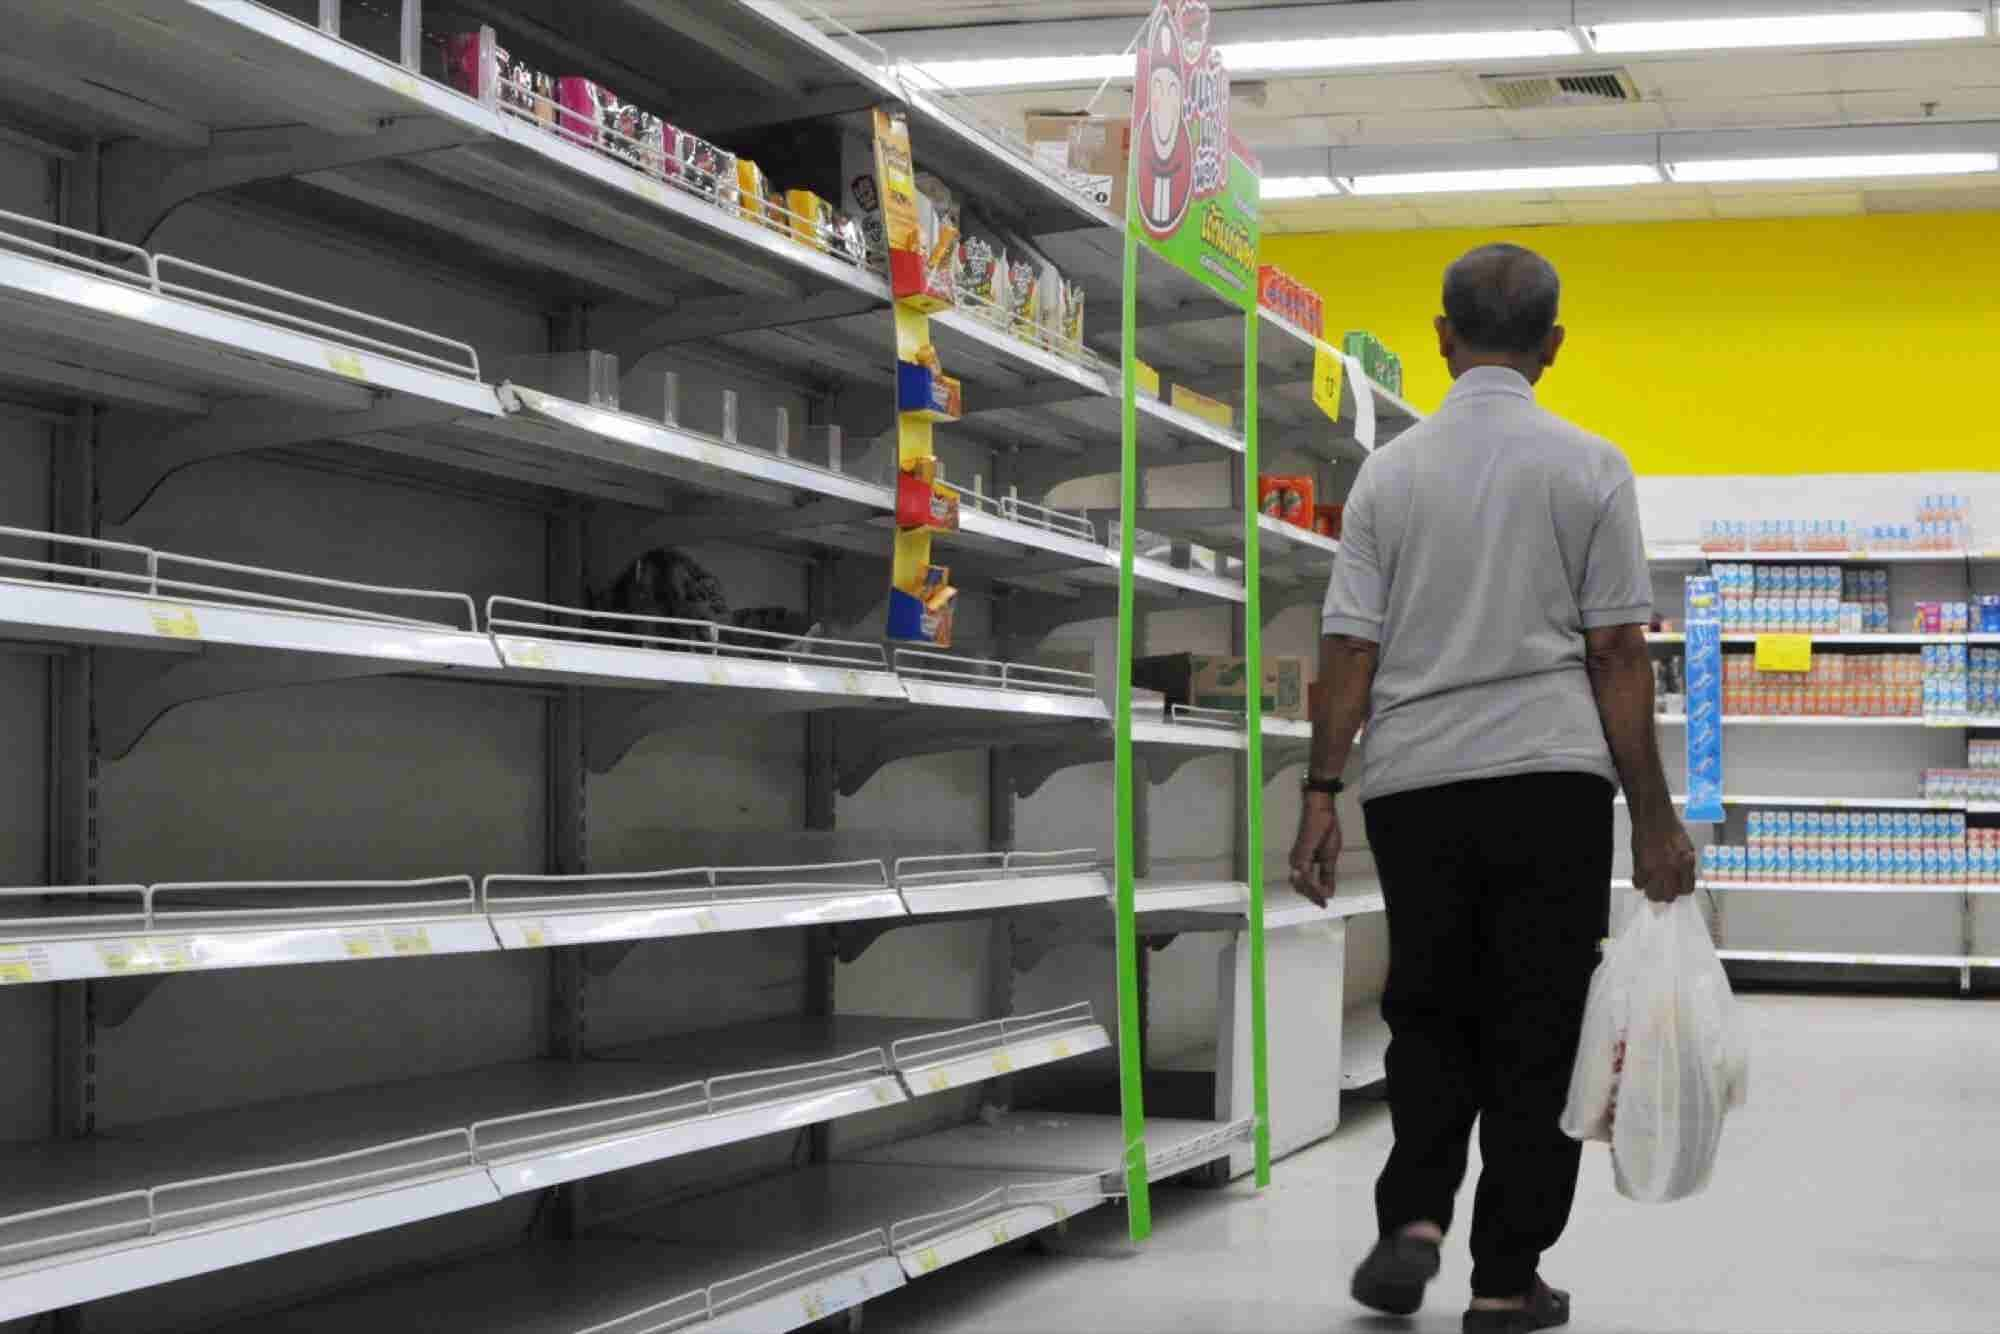 Taking Our Products Off of Retail Shelves in Favor of Profits